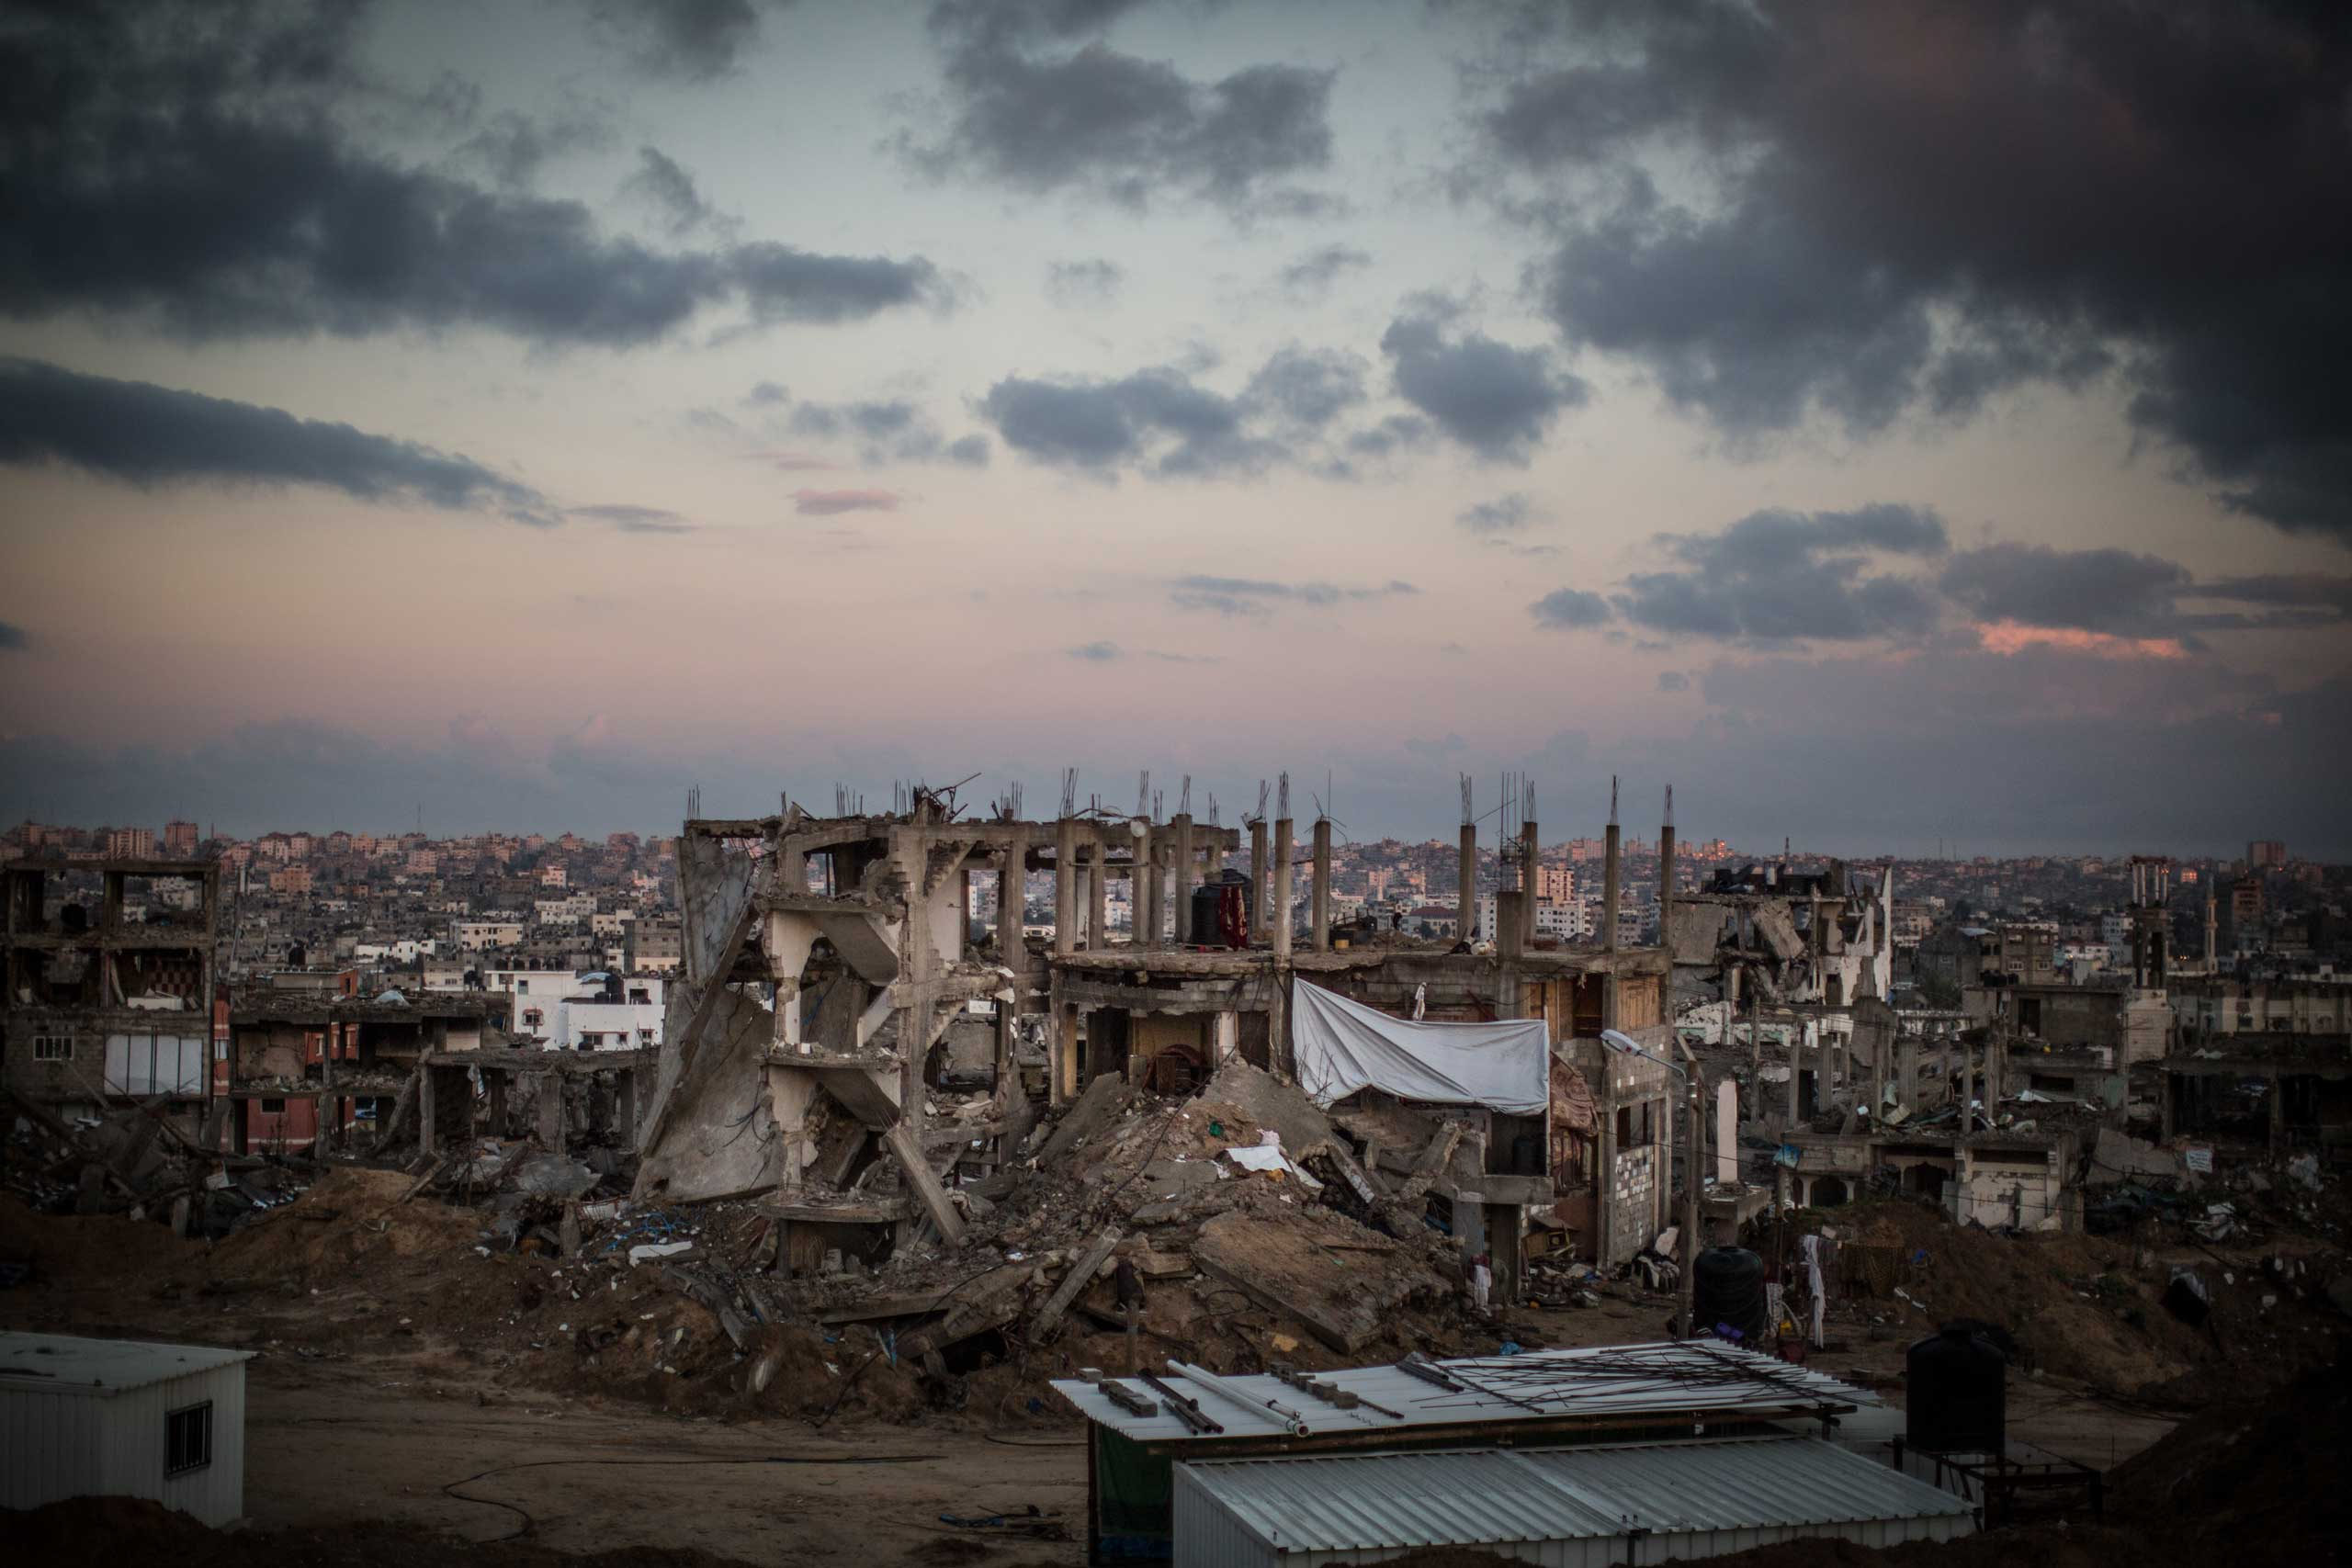 Destroyed buildings in Shejaiya, a district of Gaza, one of the areas most affected by the destruction. The Gaza Strip, December 2014.